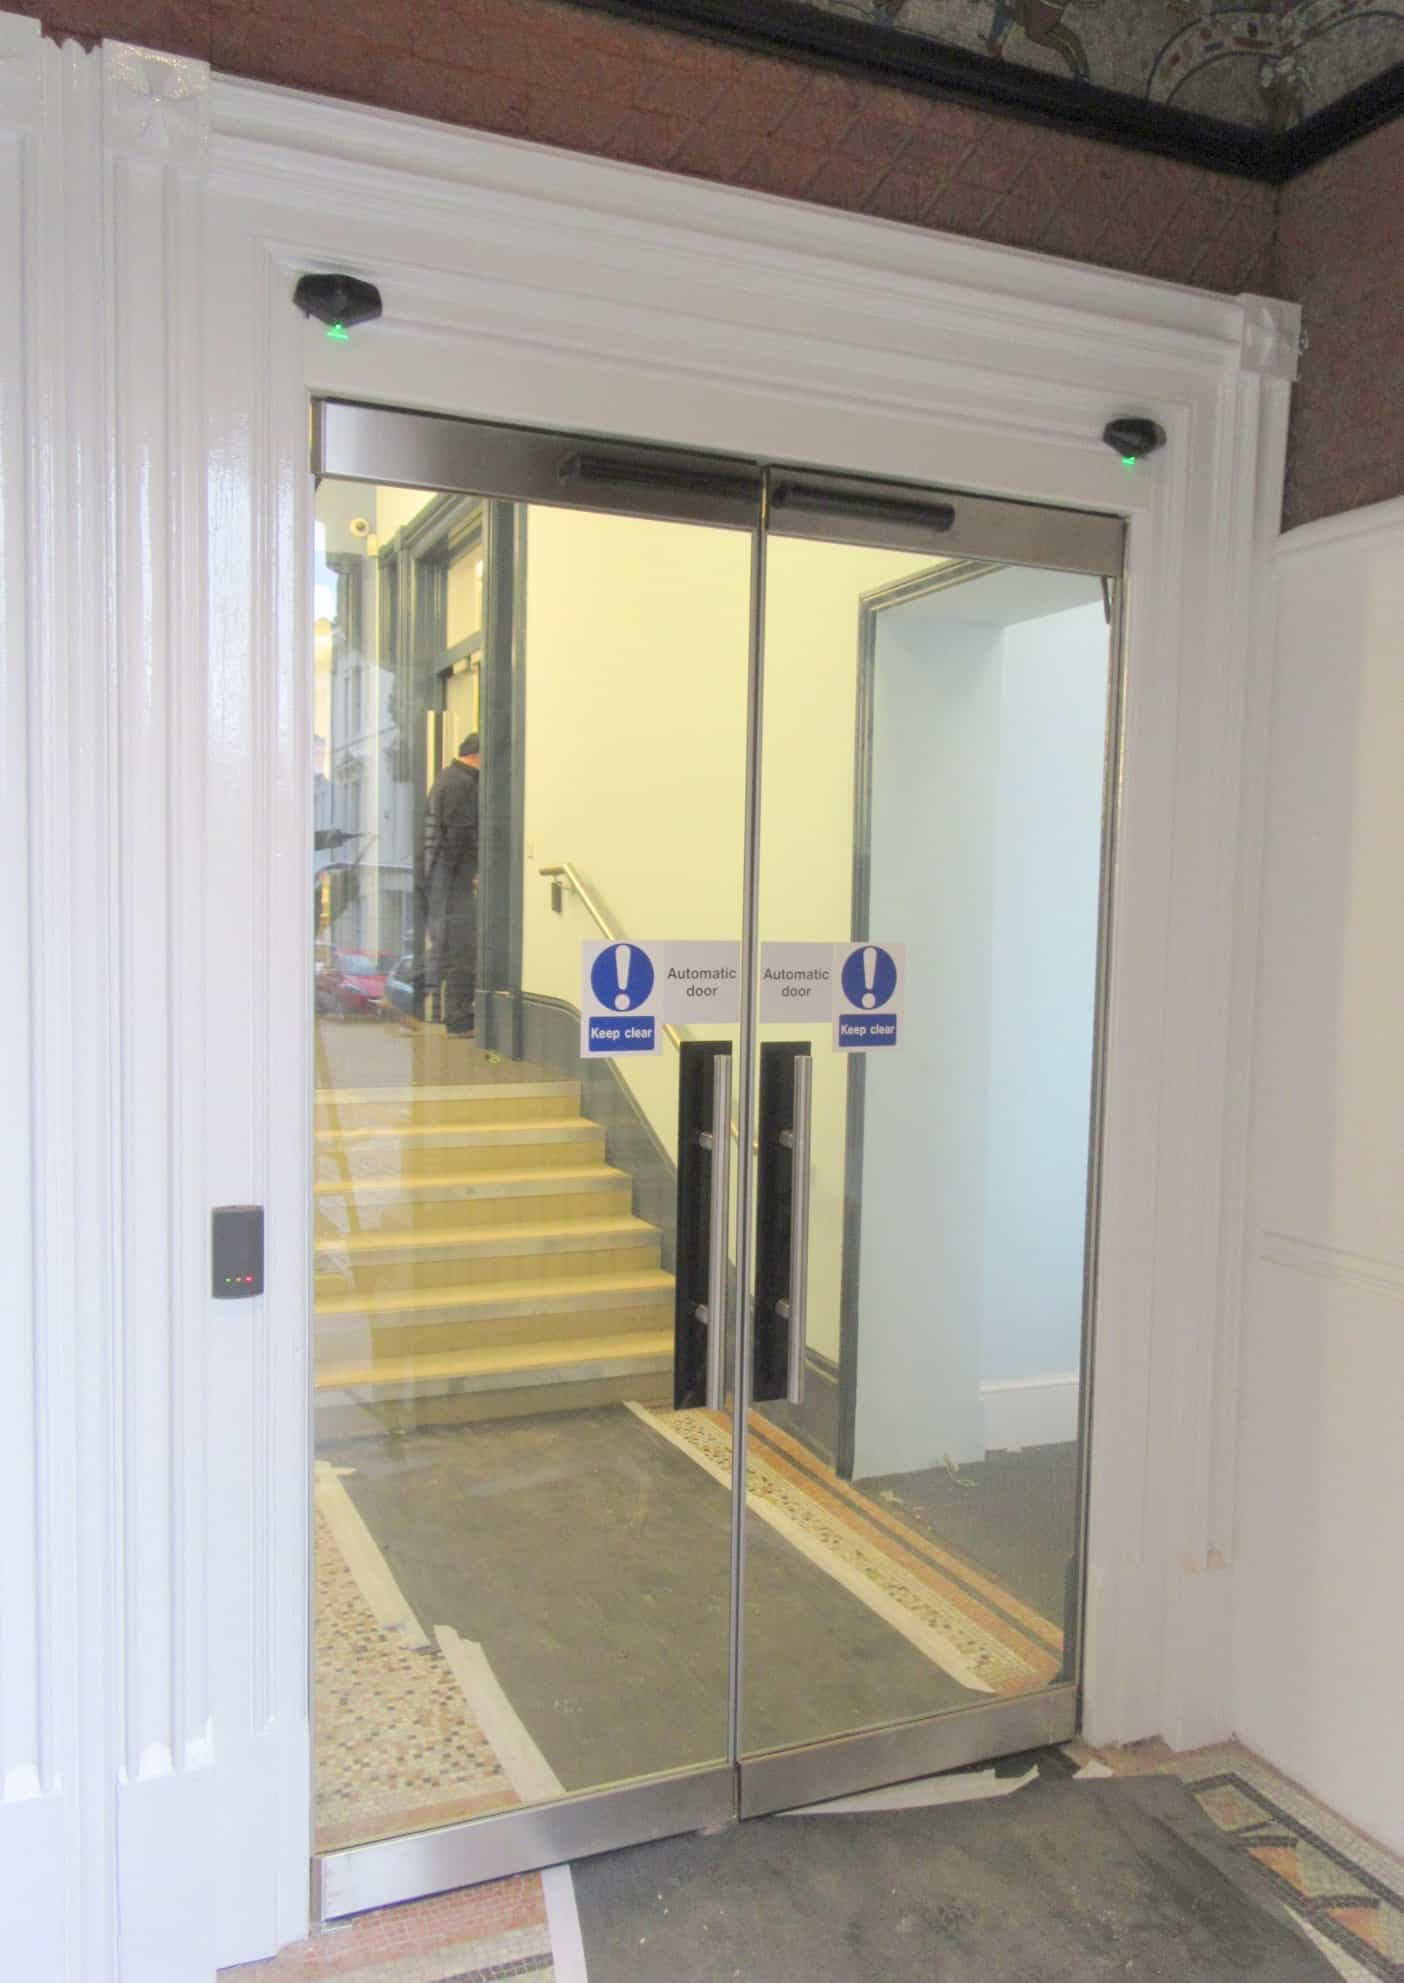 hasting-library-automatic-glass-doors